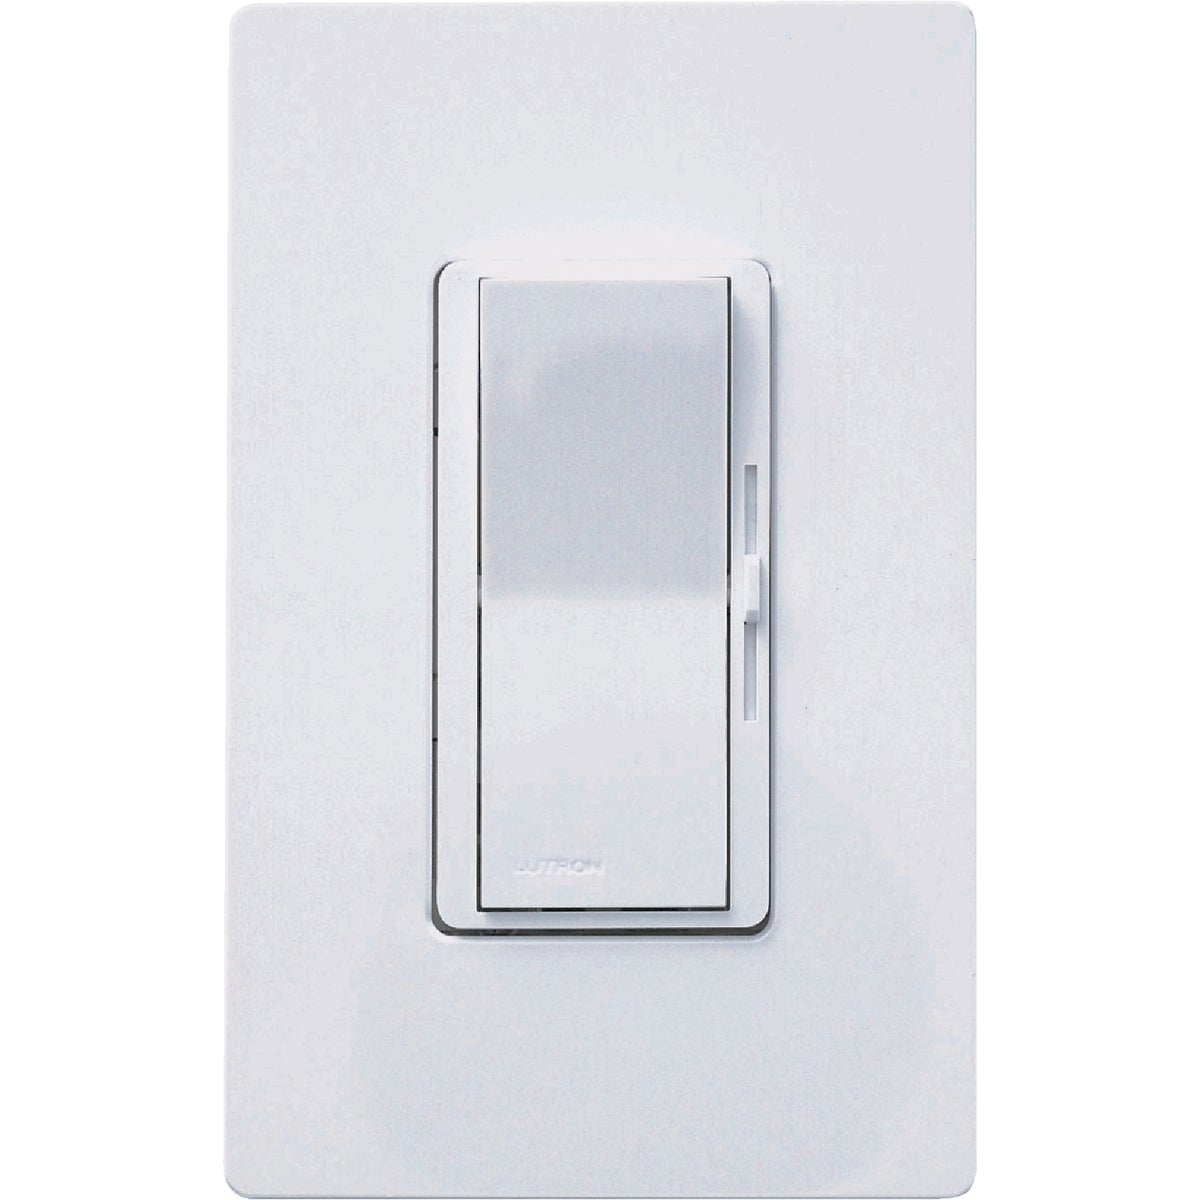 WHT SP SLIDE DIMMER - DVW-600PH-WH by Lutron Elect Co Inc